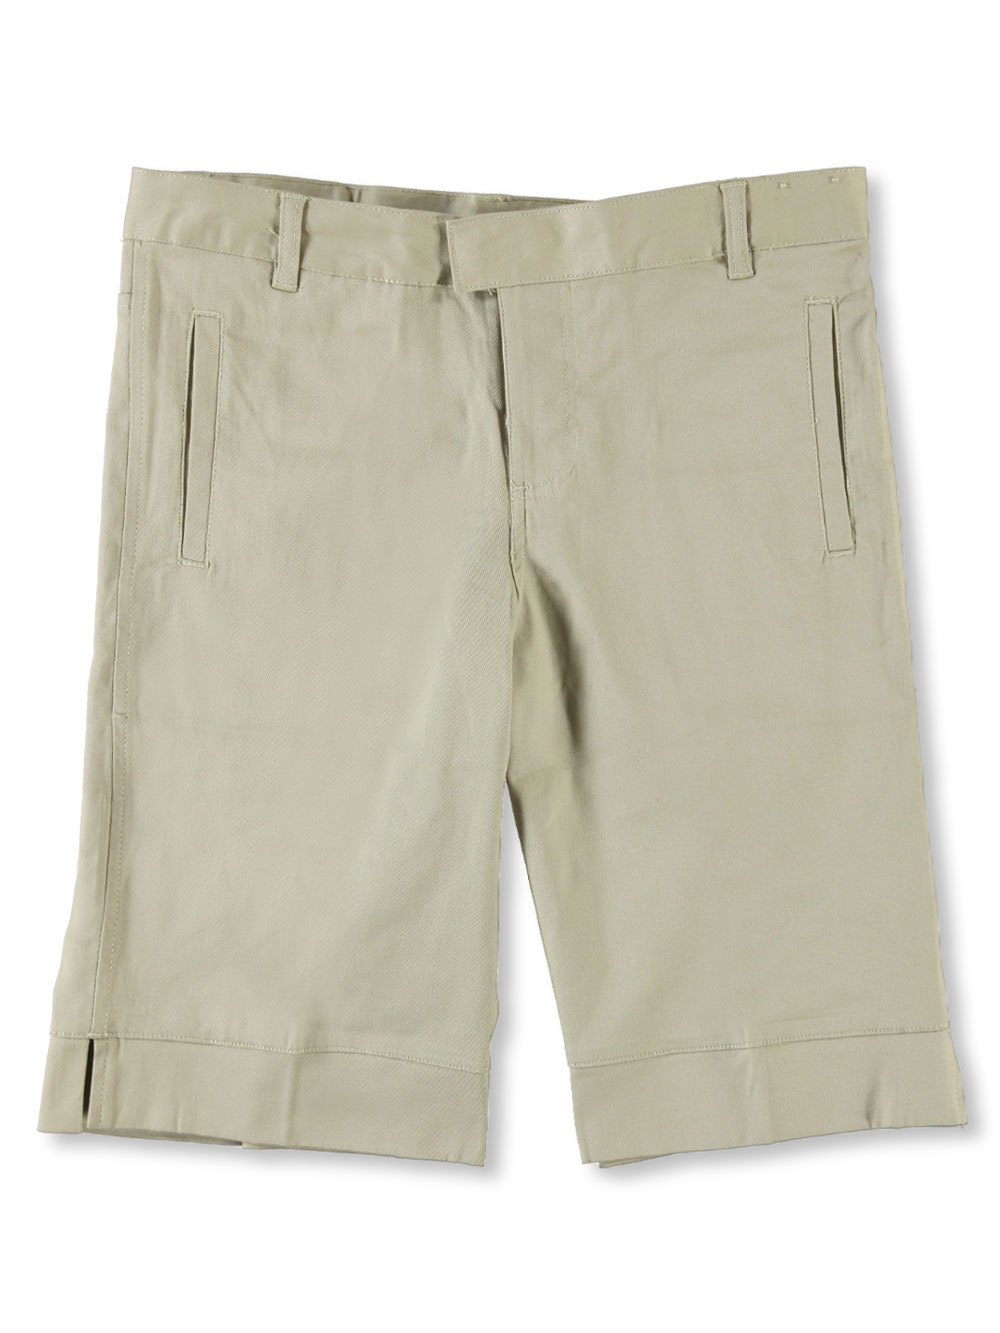 Pleaser At School by French Toast French Toast Big Girls' Below the Knee Bermuda Short (Sizes 7 - 16)